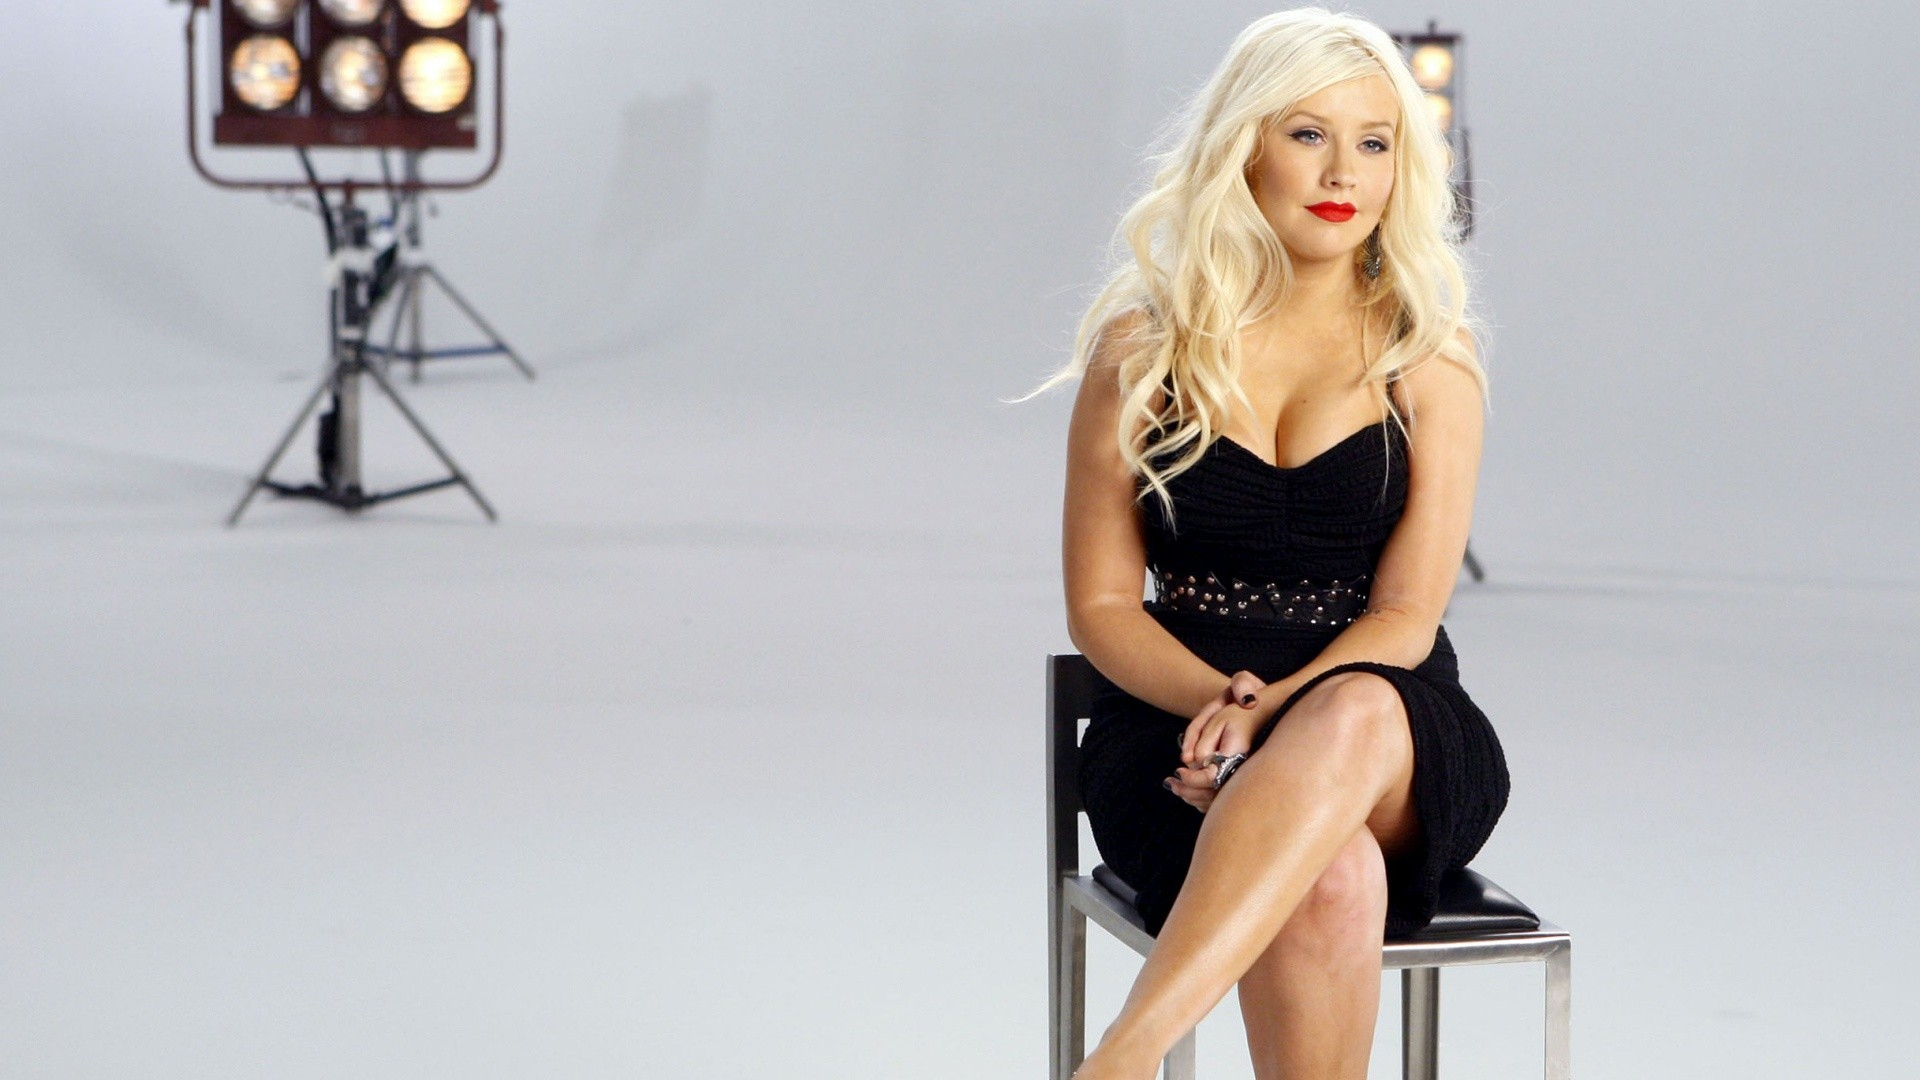 Christina Aguilera 2013 Christina Aguilera HD Wallpaper Christina 1920x1080